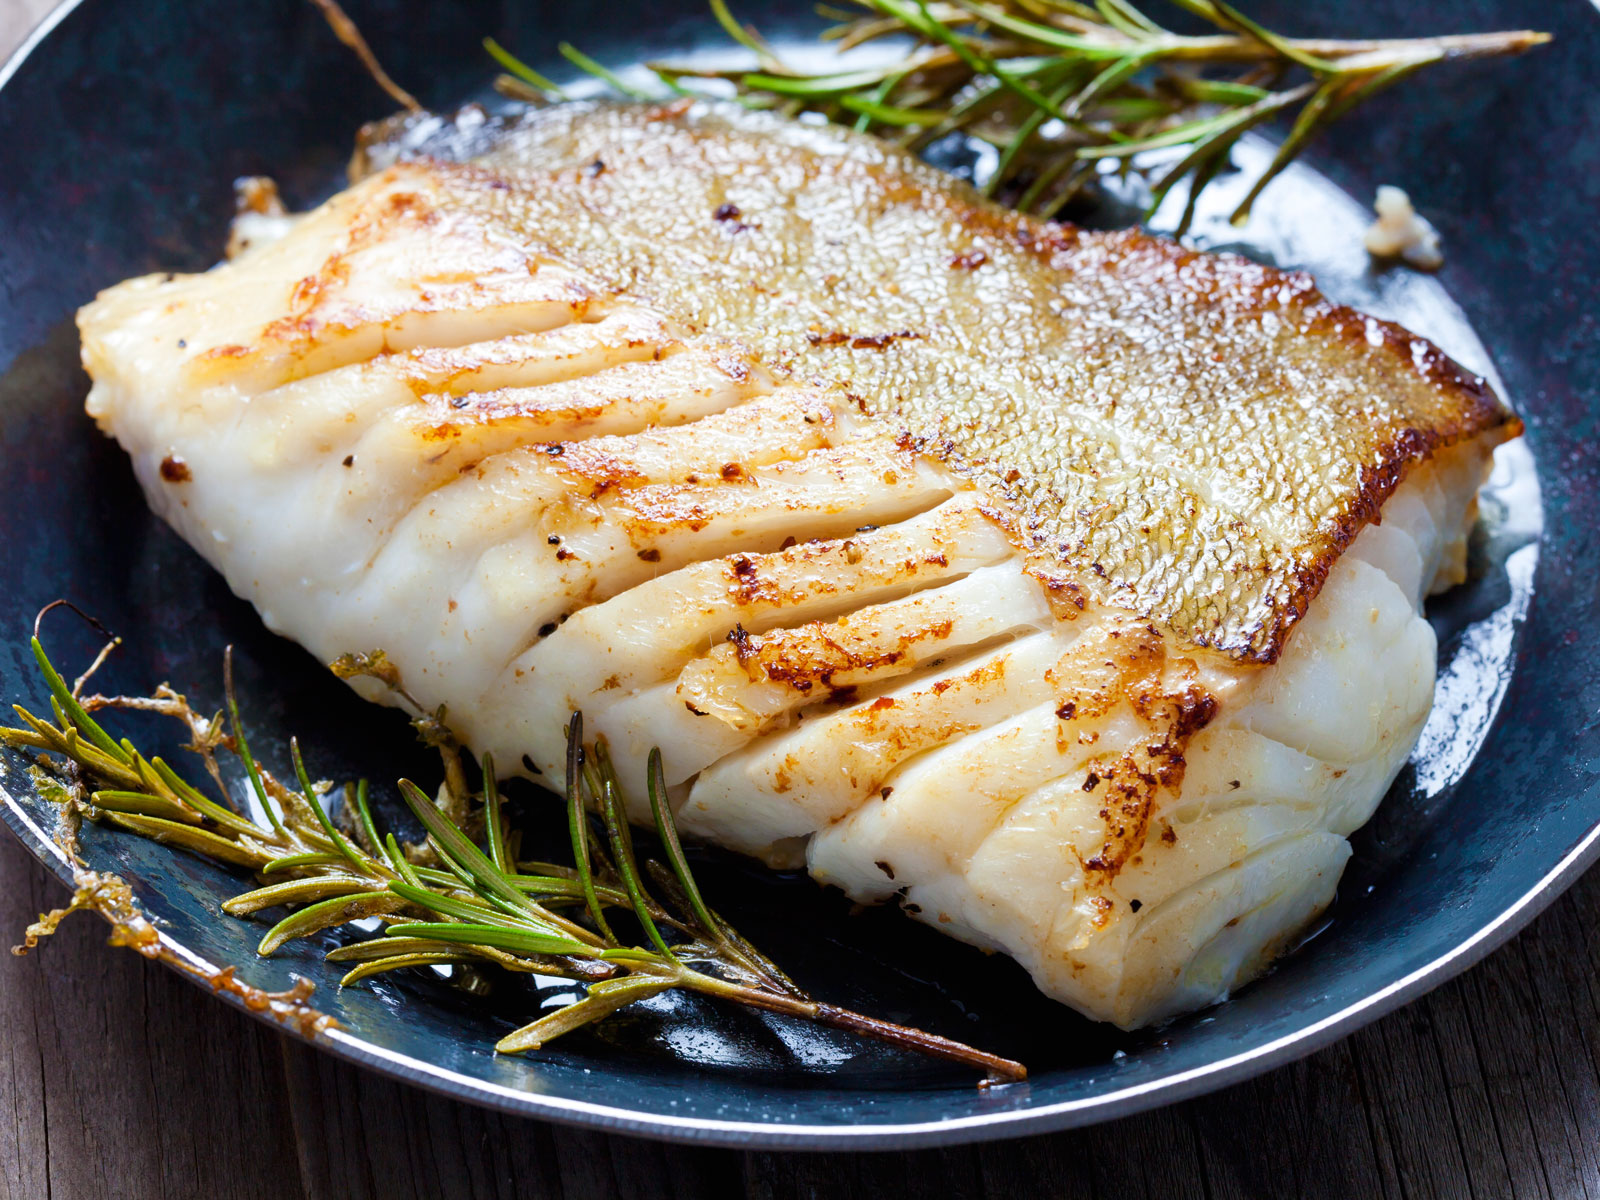 pan fried fish - Picture Of Fish